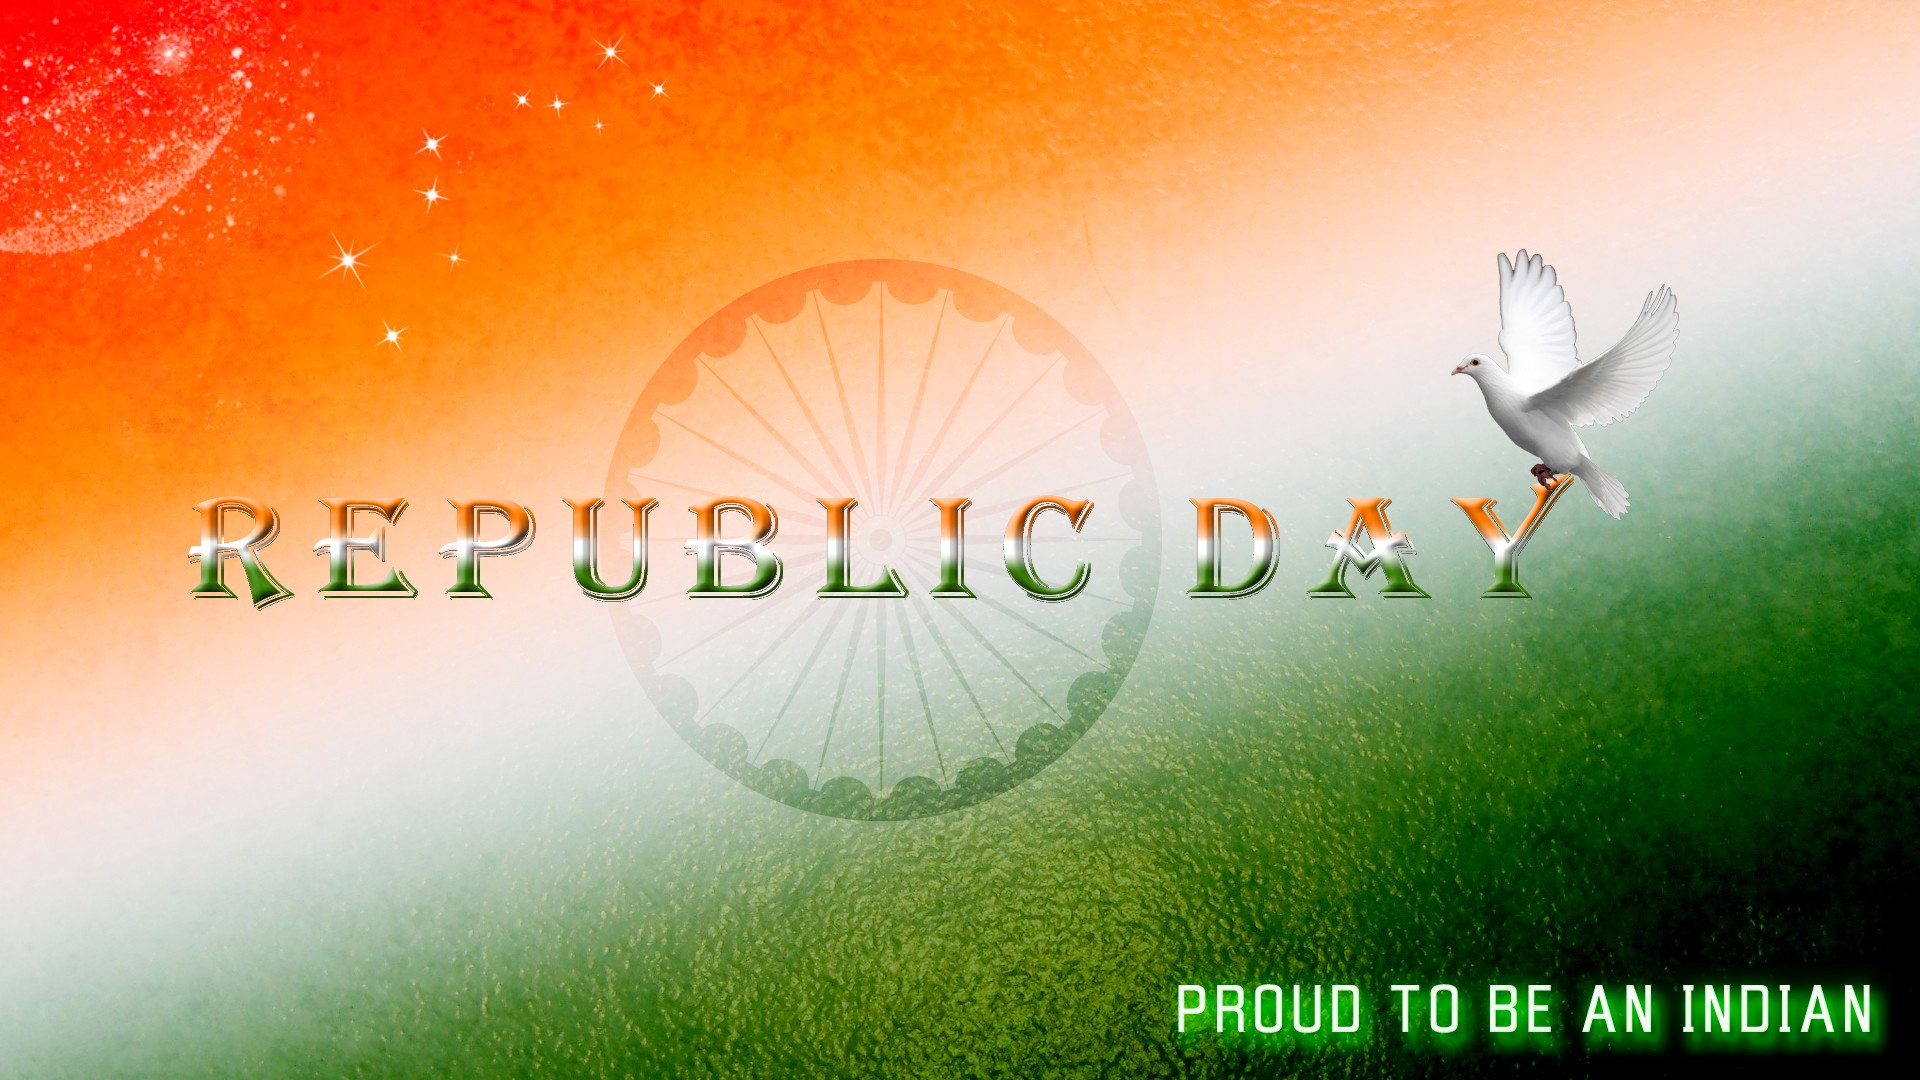 Creative republic day images for whatsapp